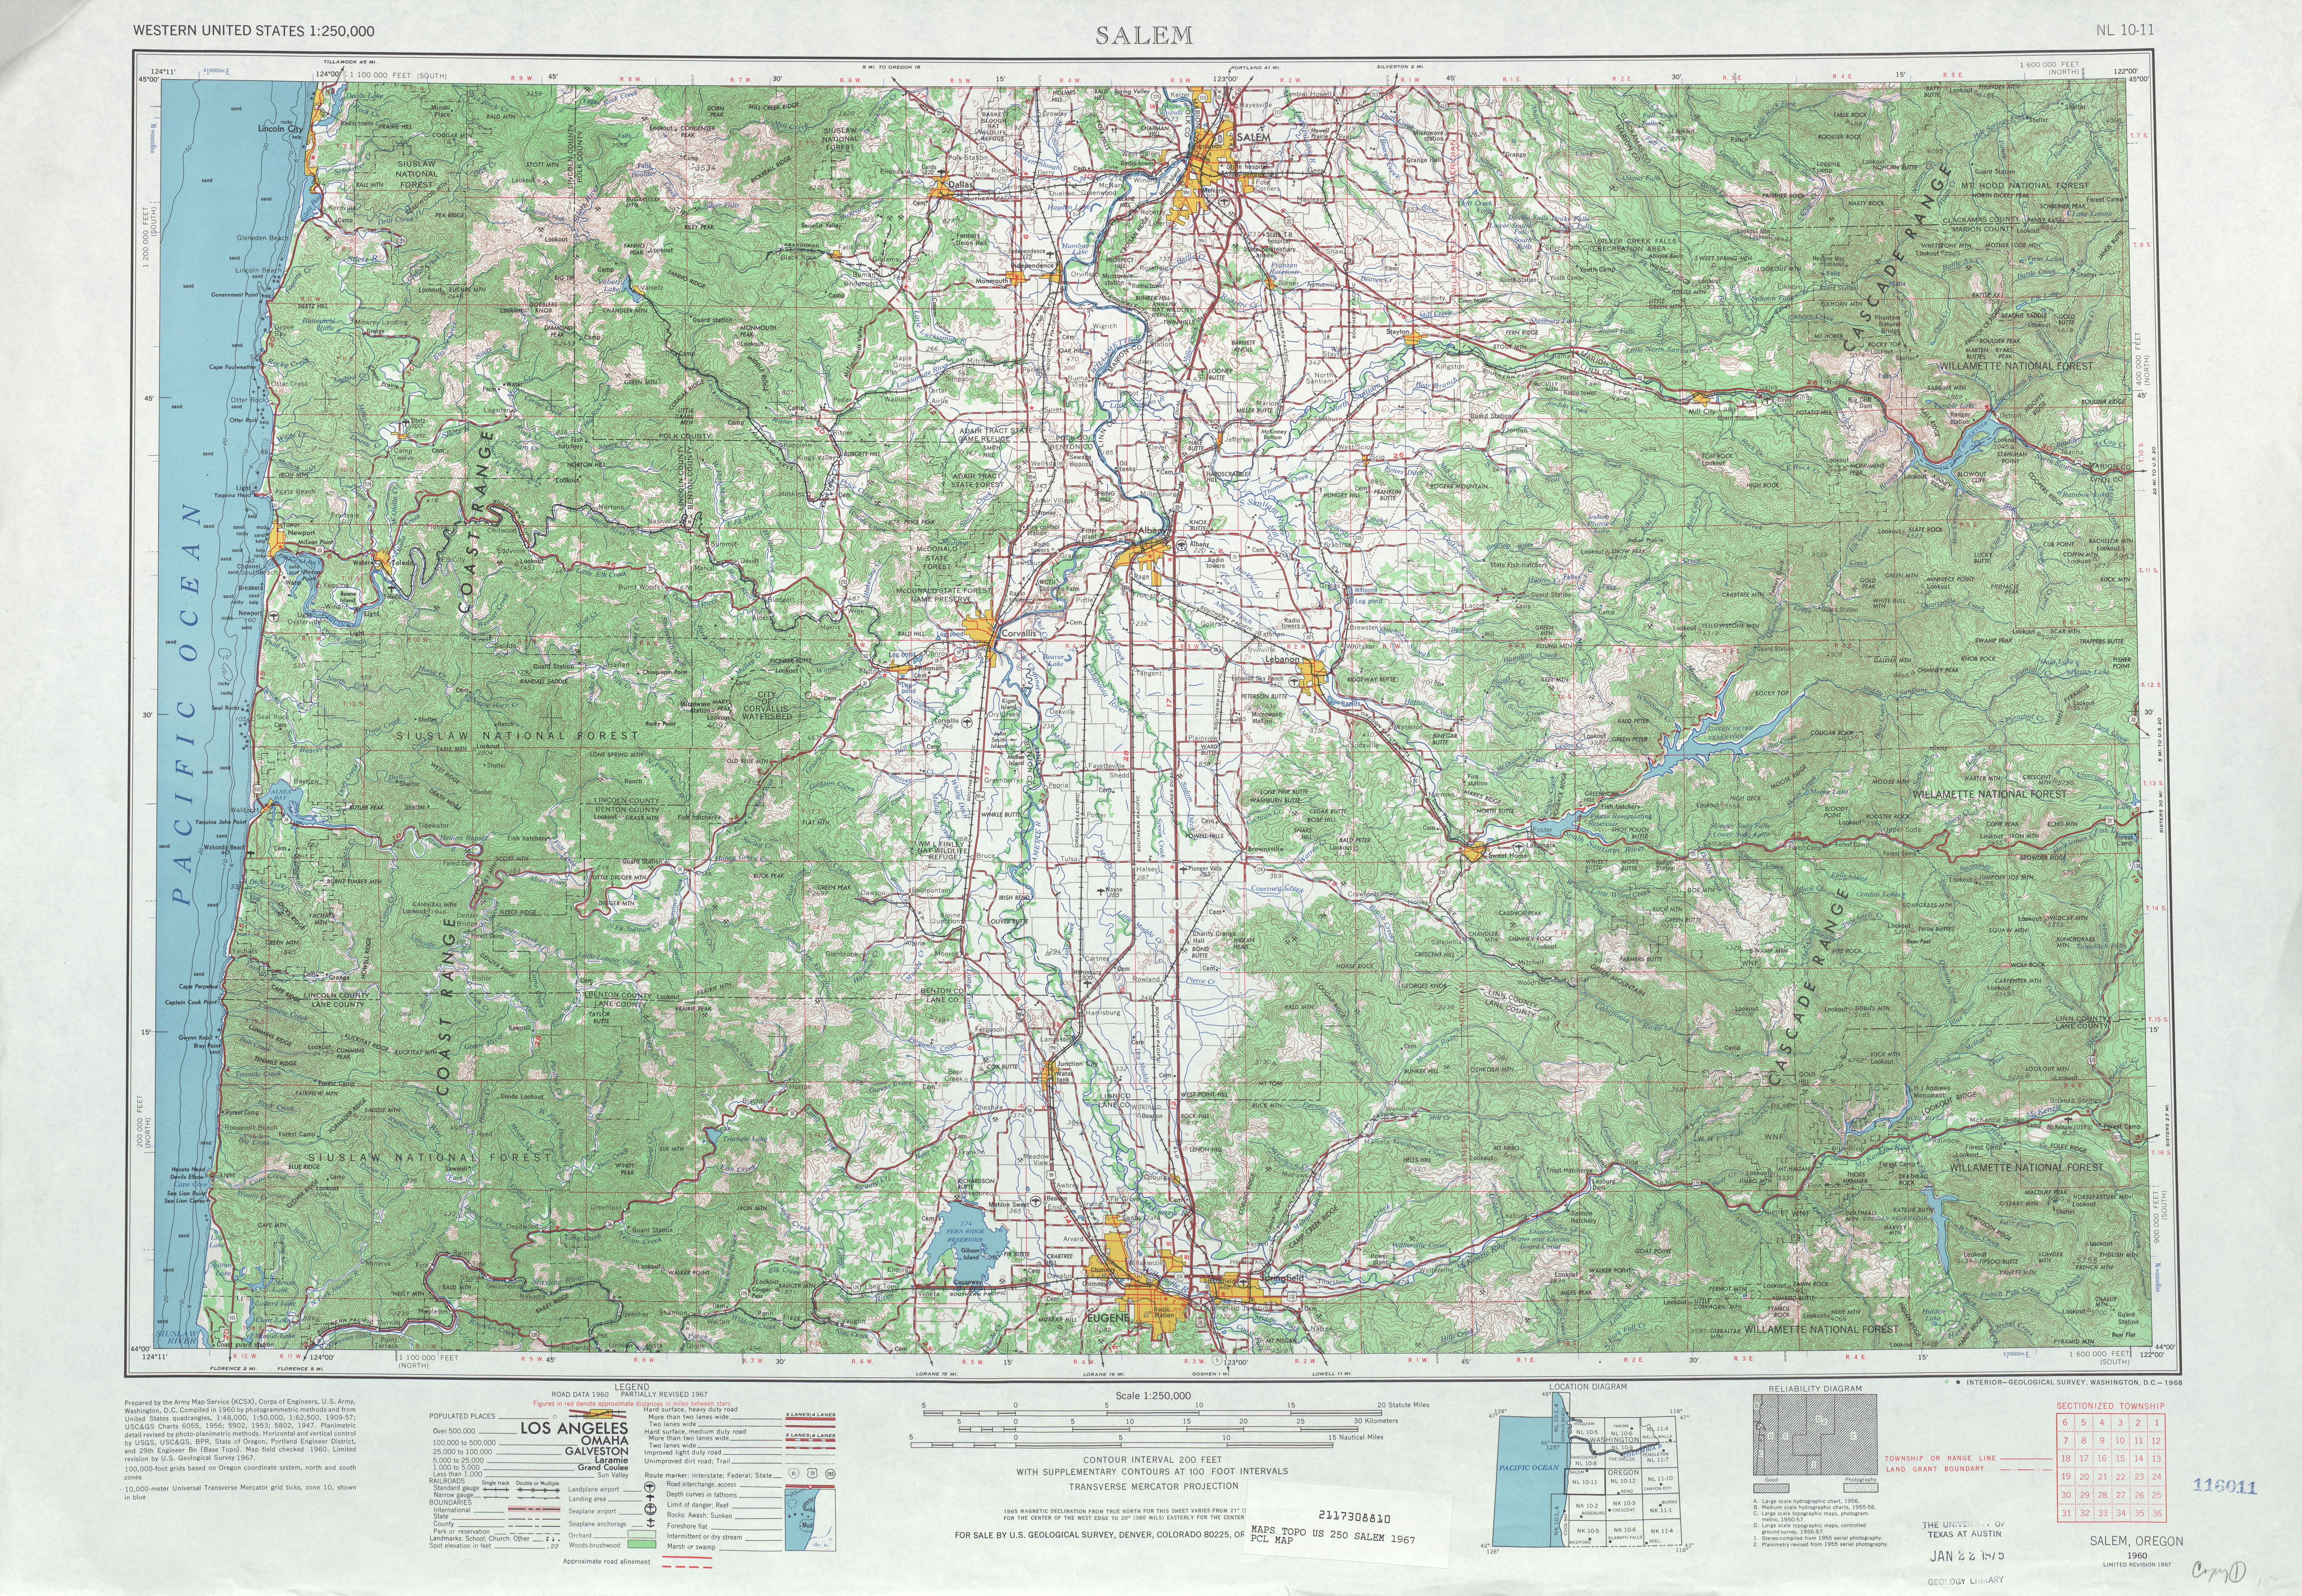 Salem Topographic Map Sheet, United States 1967